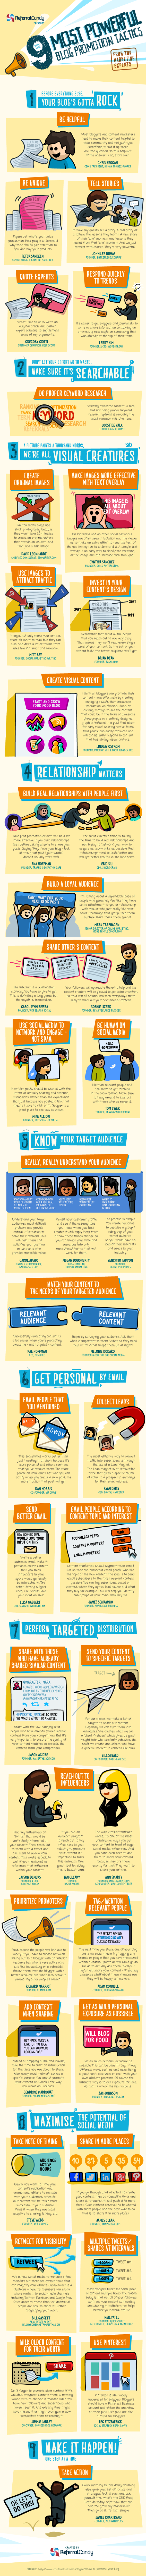 how to promote blog